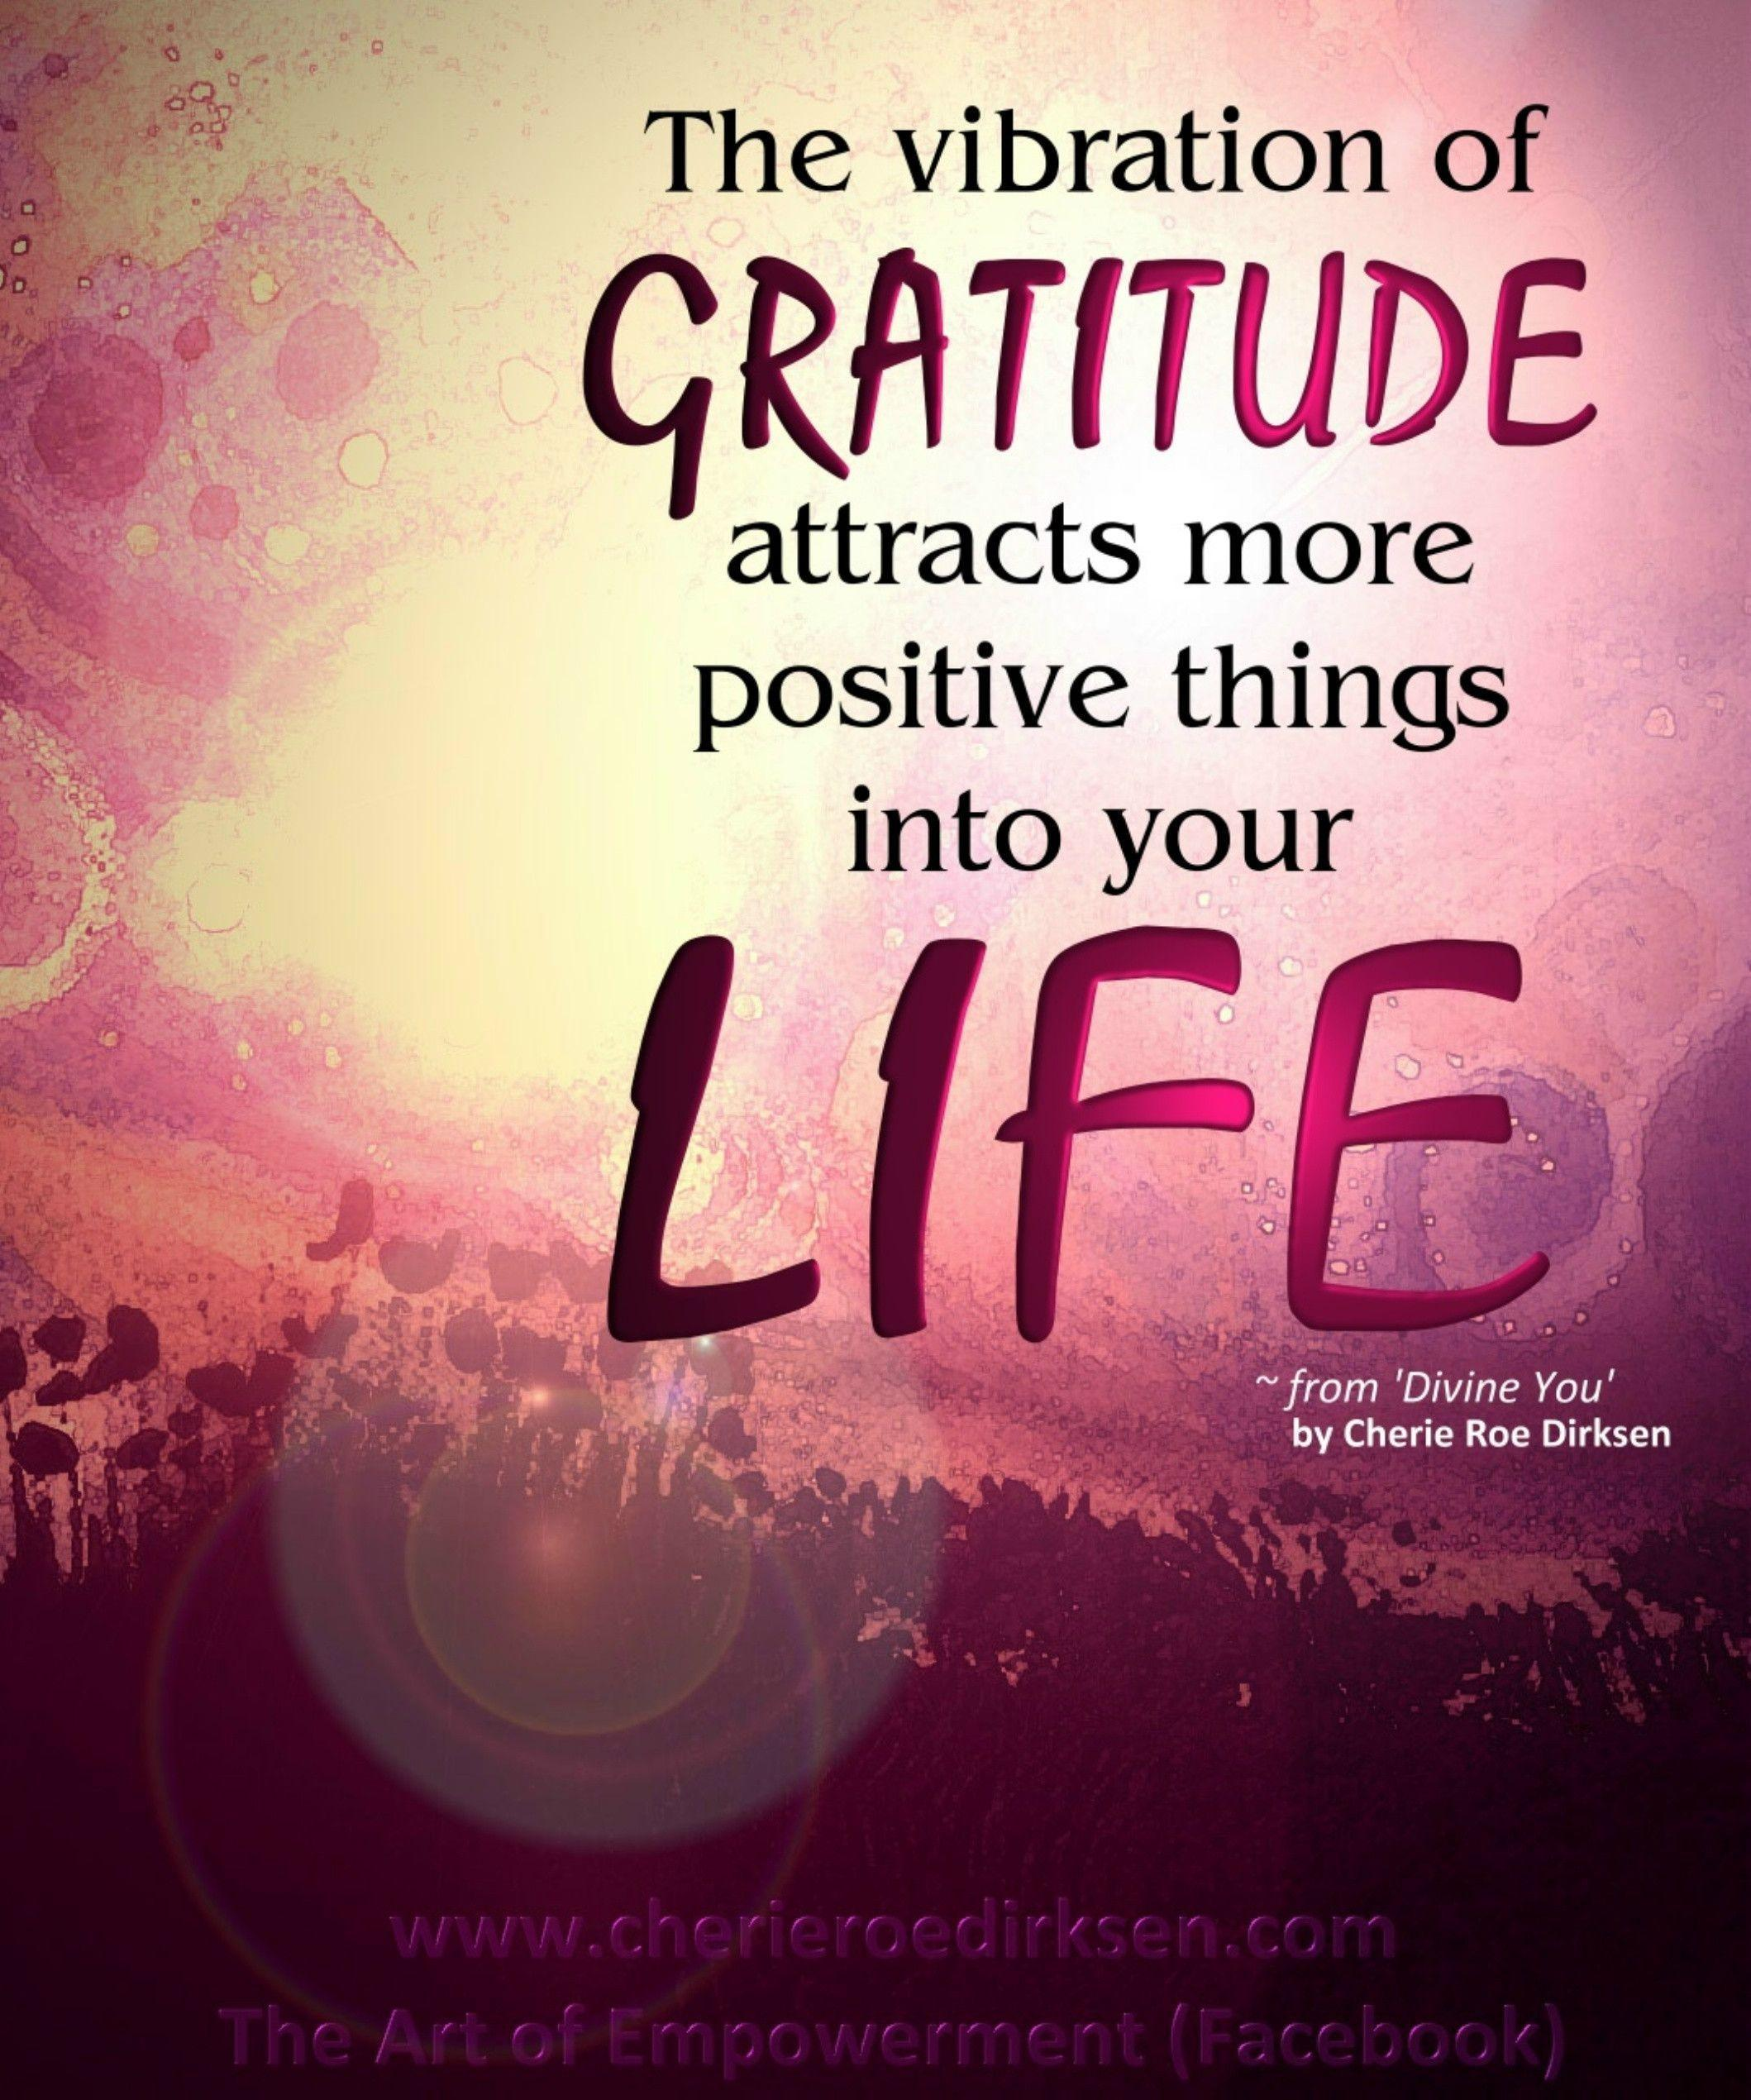 Inspirational Quotes About Gratitude: Gratitude Wallpapers